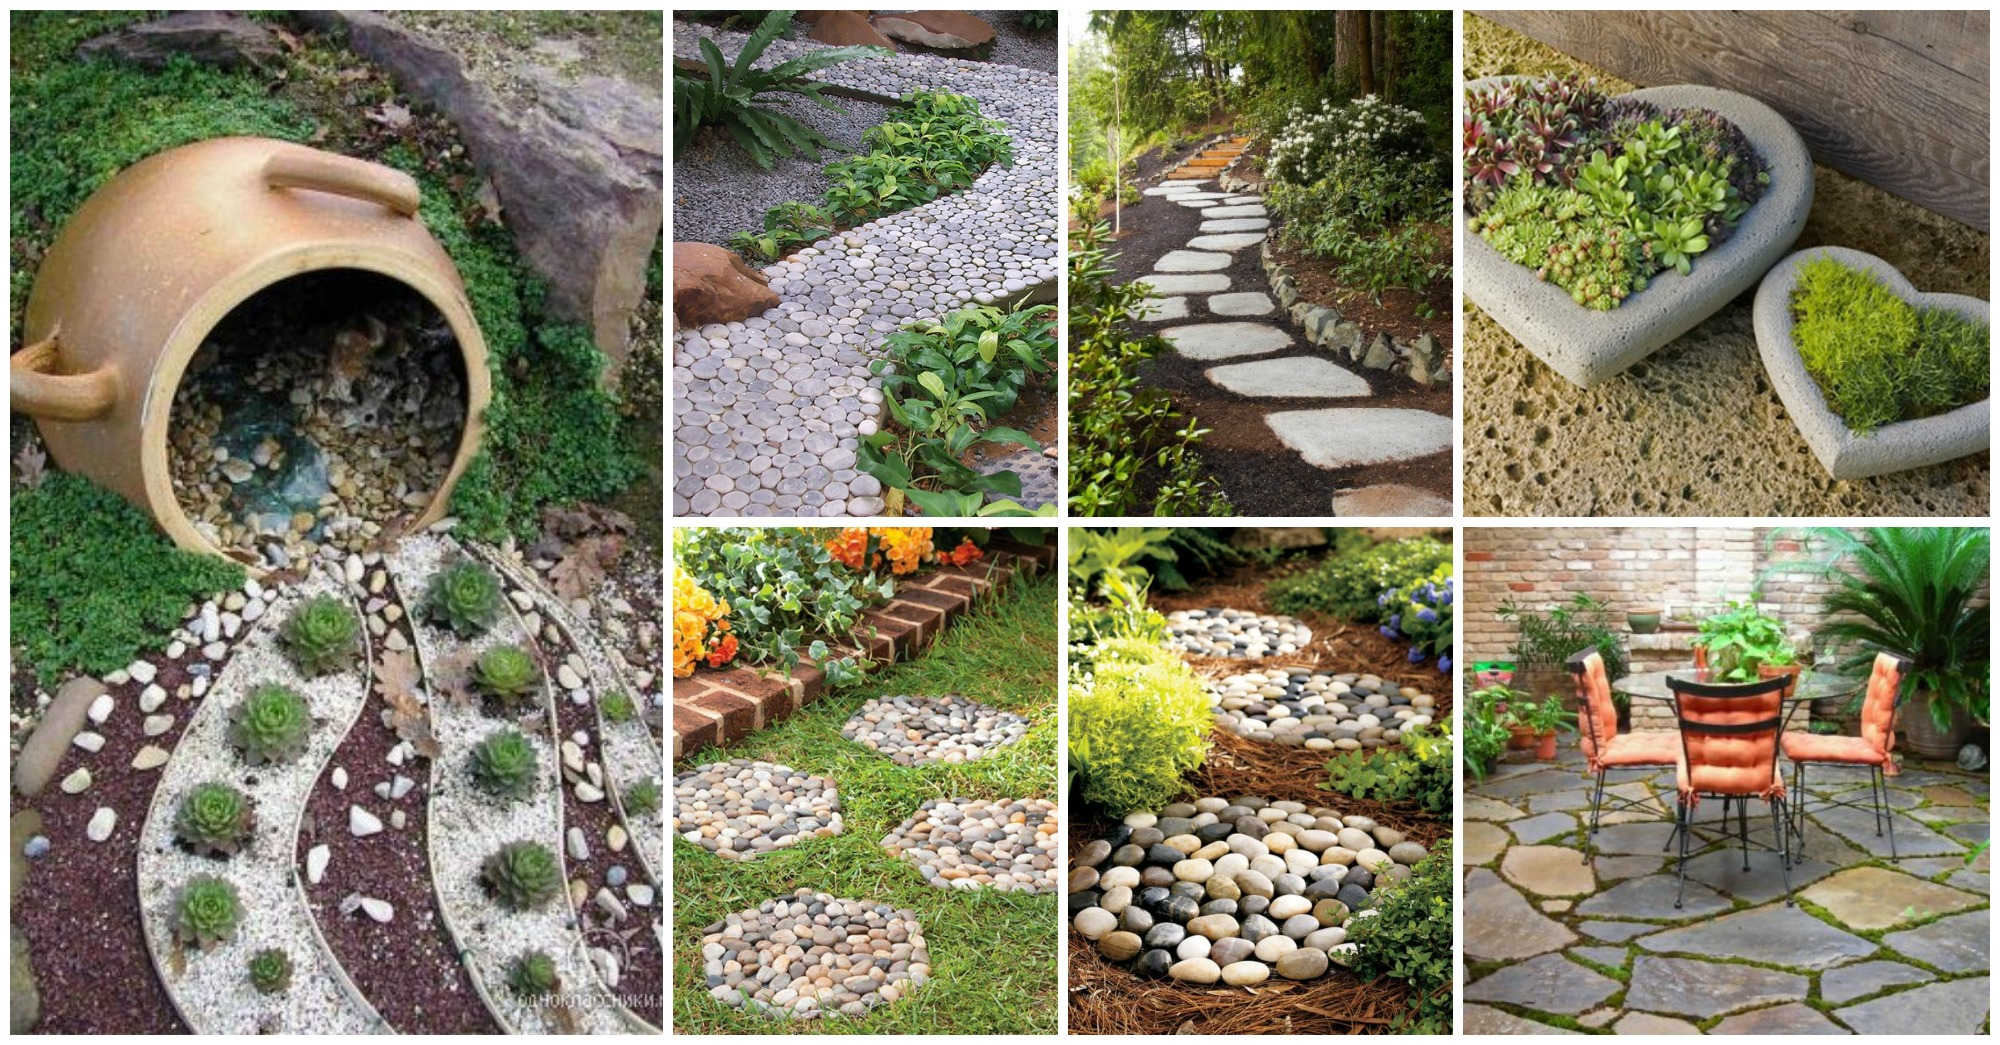 15 sorprendentes ideas para decoraci n de jard n con piedras for Ideas de decoracion de jardines